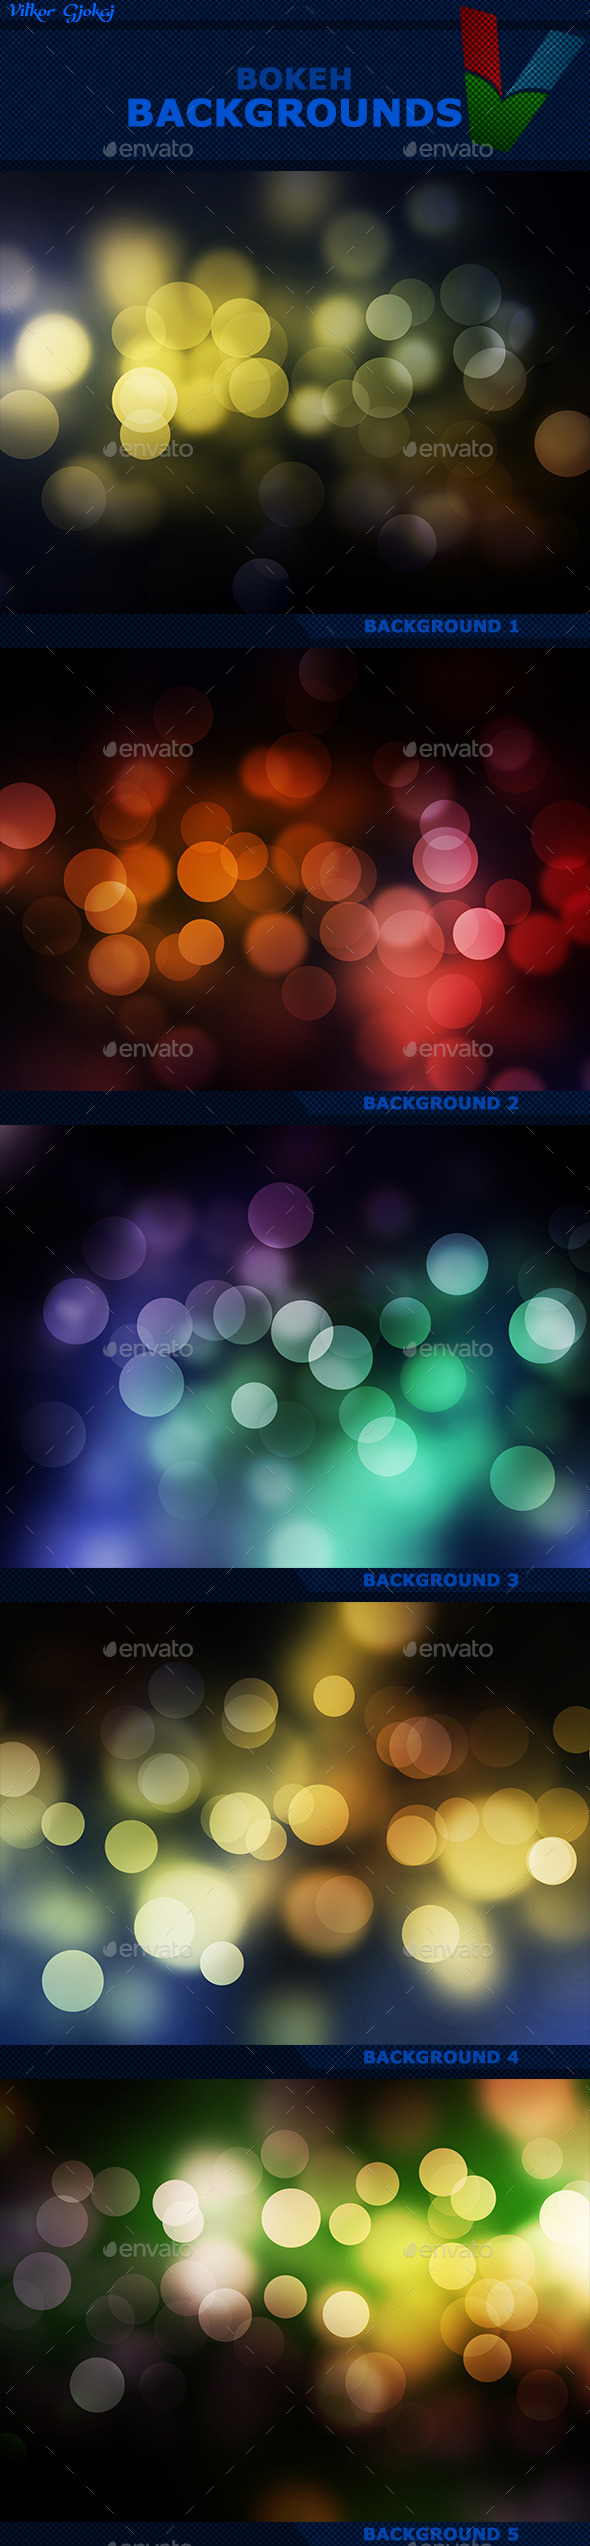 Bokeh Backgrounds - Abstract Backgrounds